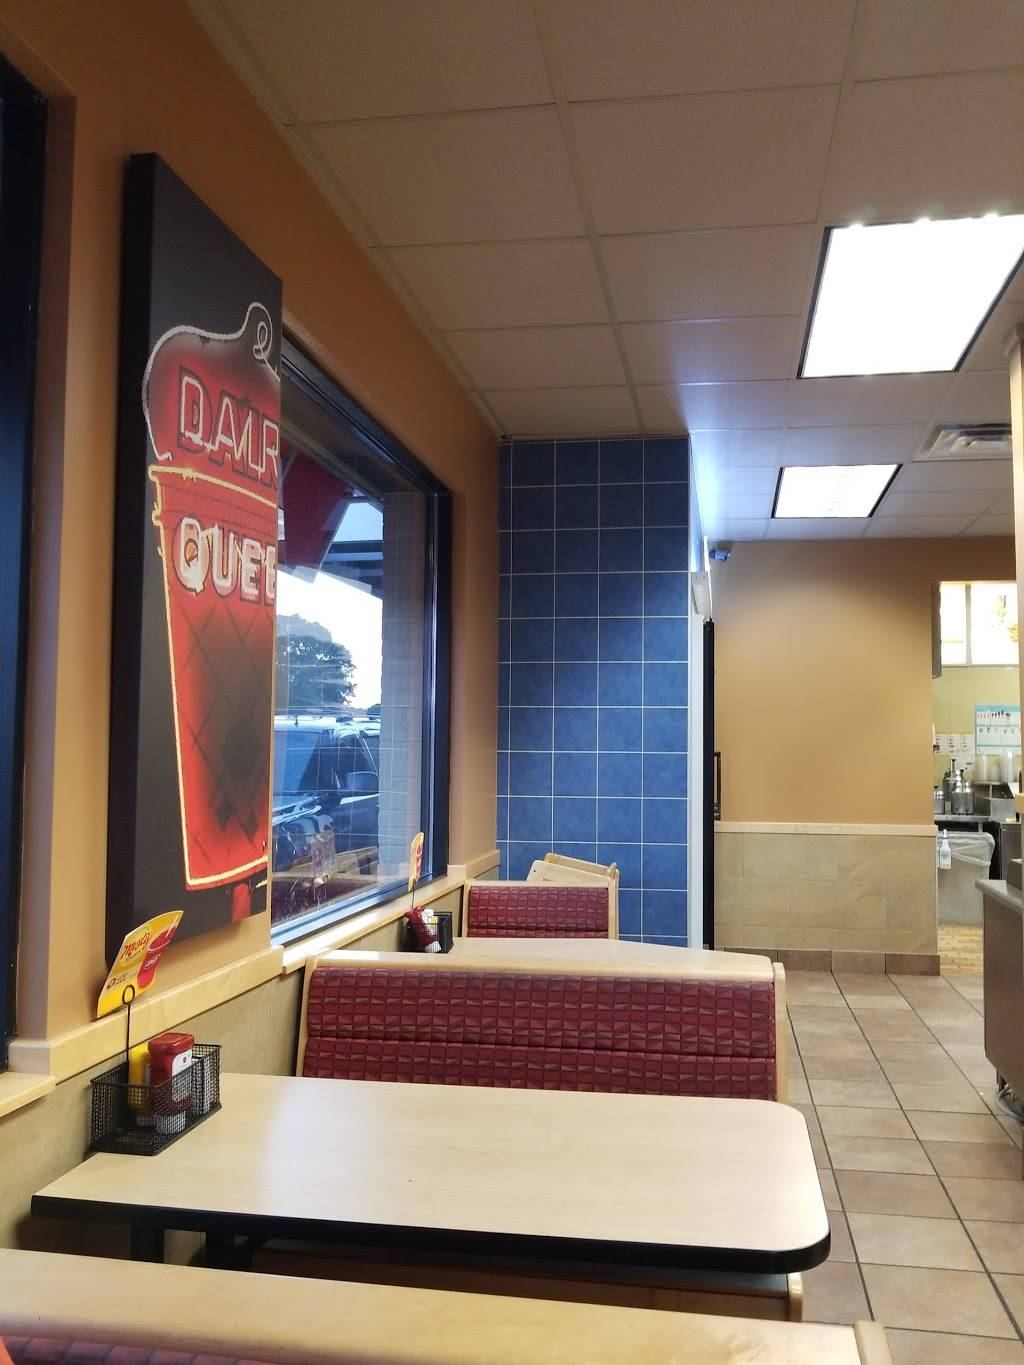 Dairy Queen Grill & Chill - restaurant  | Photo 3 of 7 | Address: 6655 Cahill Ave, Inver Grove Heights, MN 55076, USA | Phone: (651) 455-0339